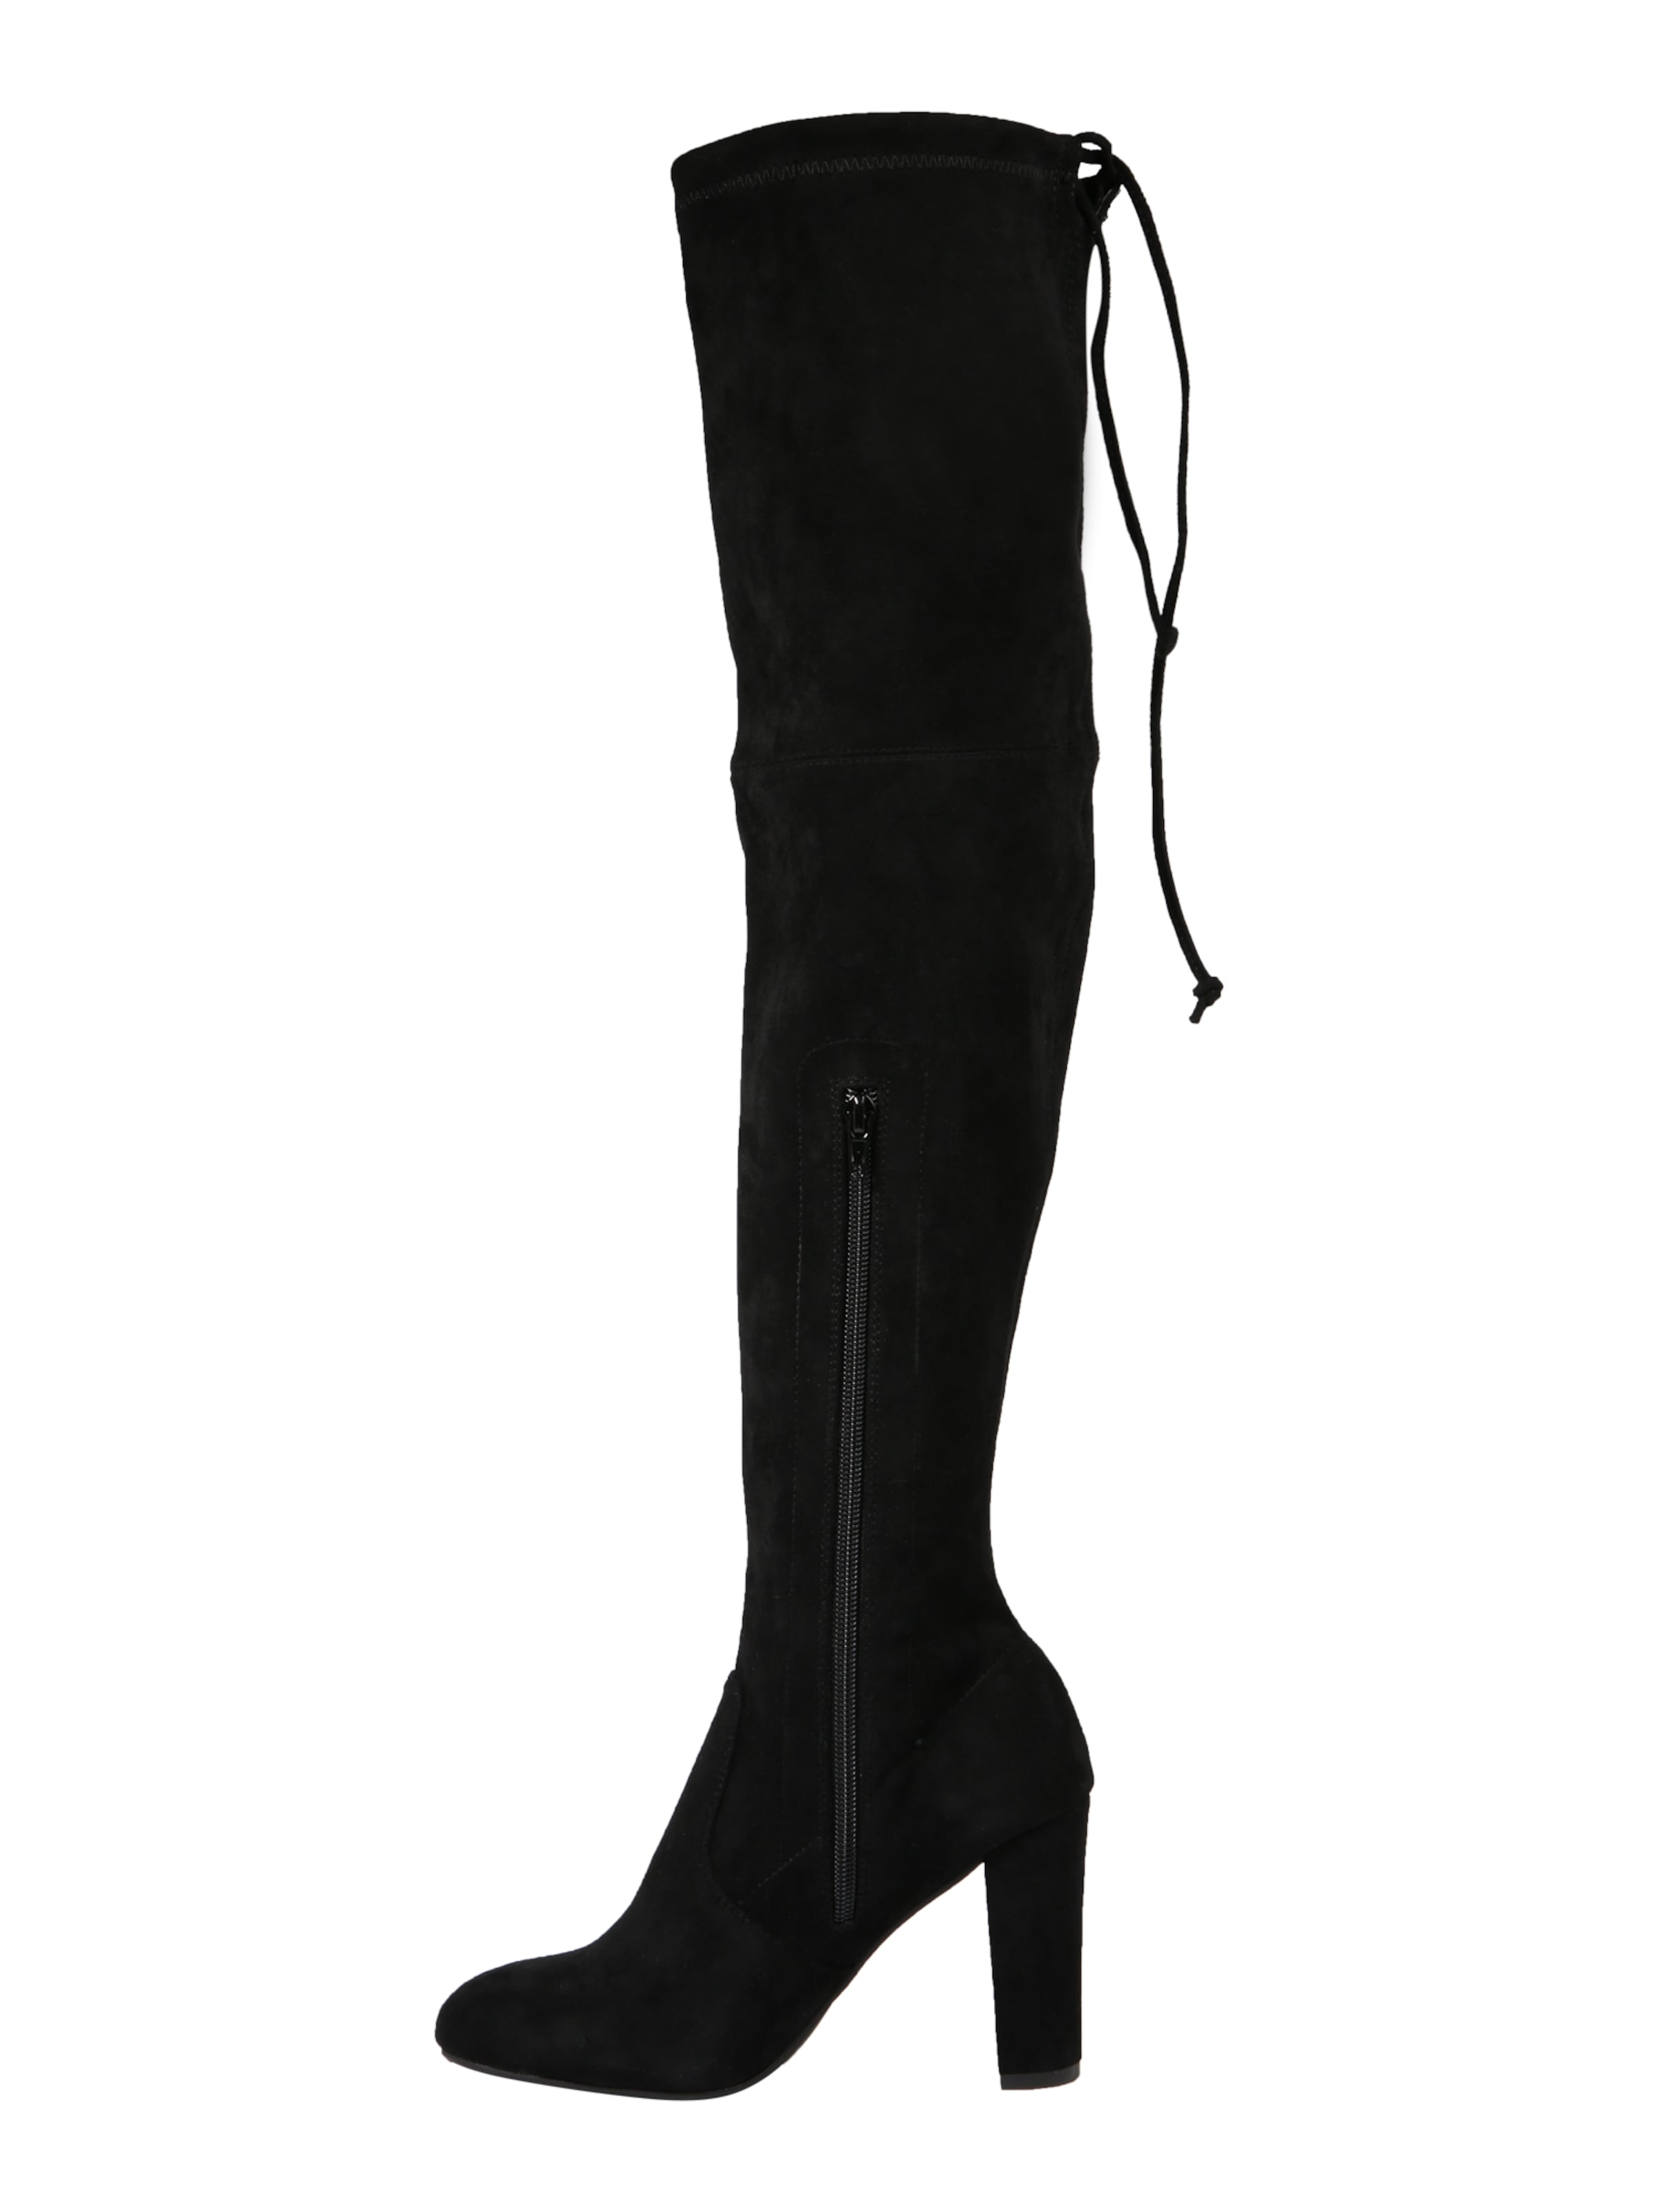 You You In About Stiefel About You About In Schwarz Stiefel Schwarz PZOkXiu